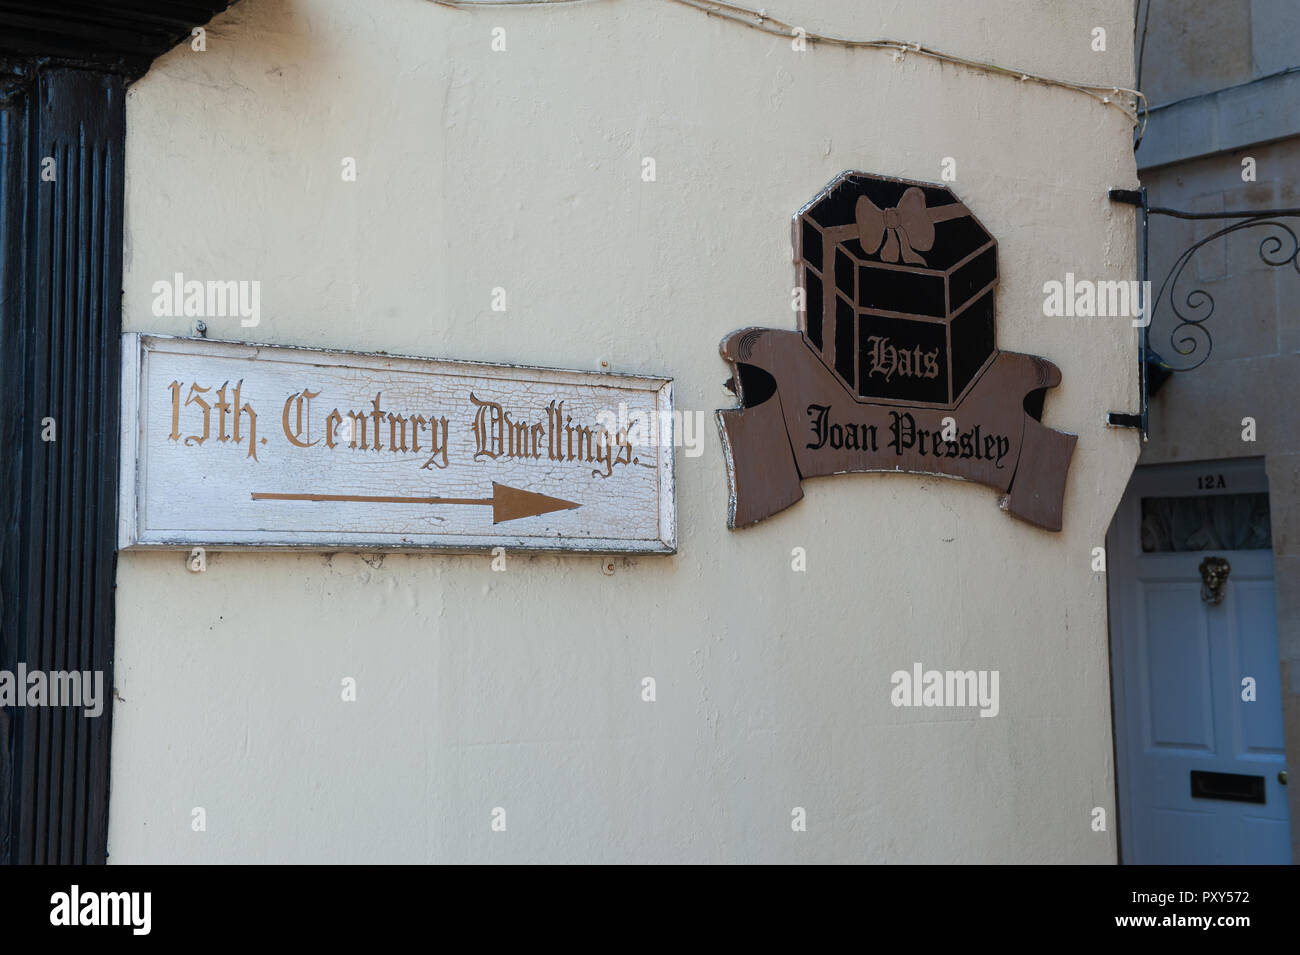 Sign for 15th Century buildings in St John's Alley, Devizes, Wiltshire, UK. - Stock Image